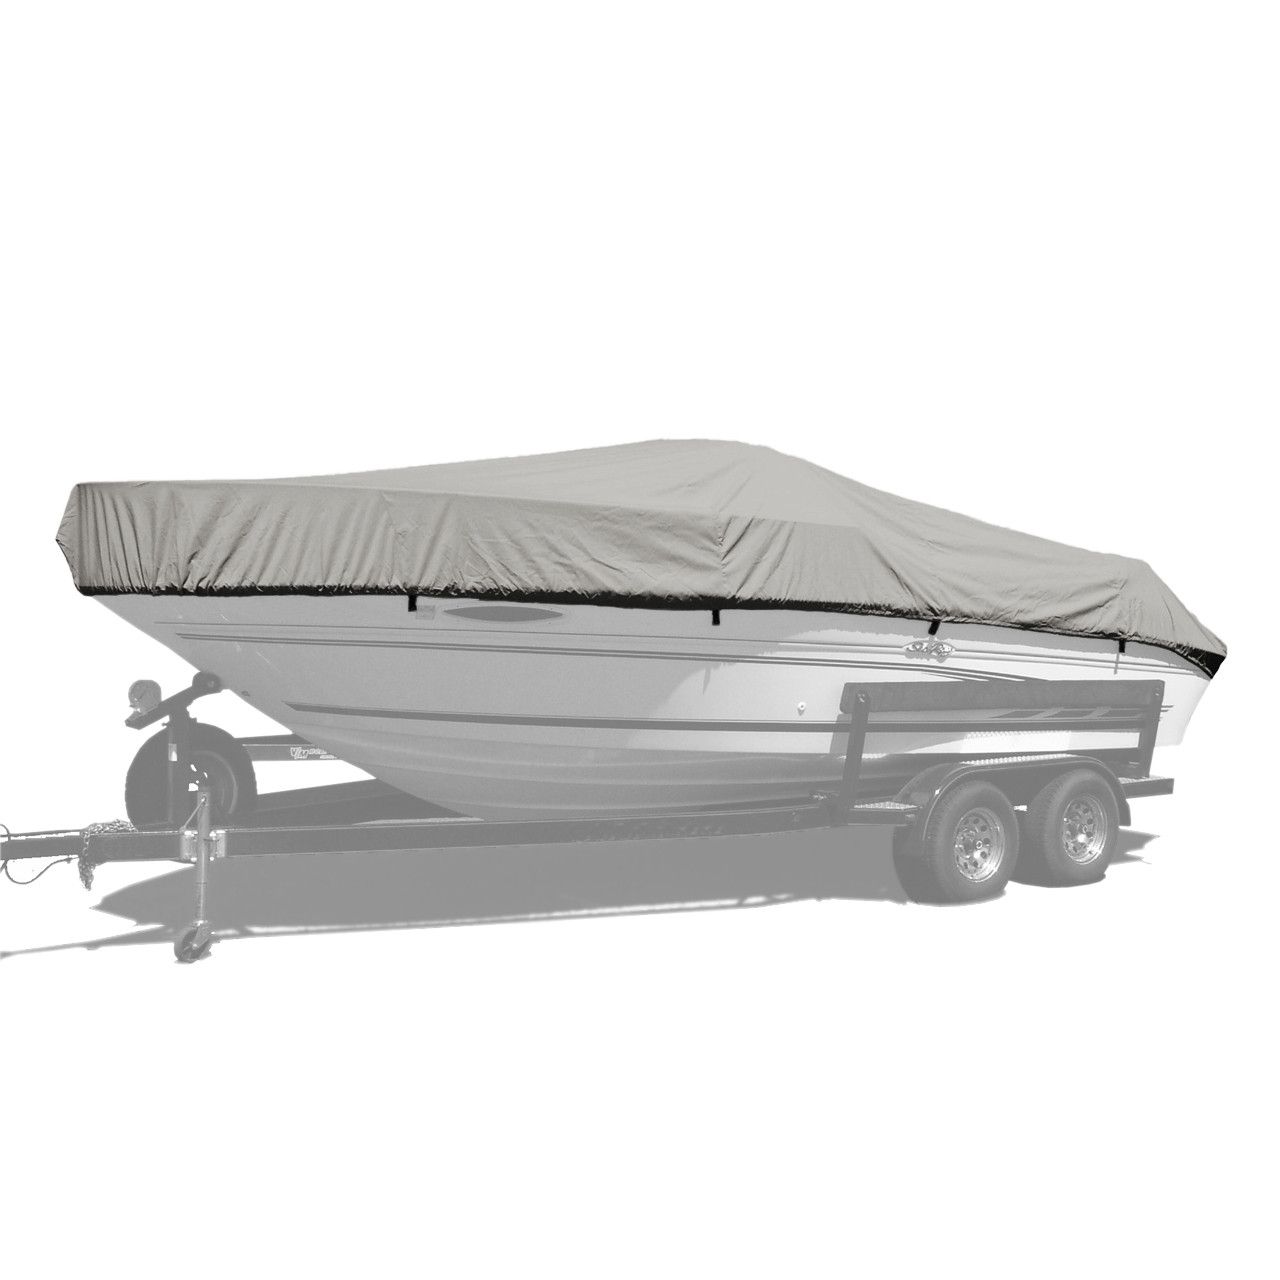 NEW BOAT COVER SKEETER ZX190 W// SIDE CONSOLE W// TM 2007-2014